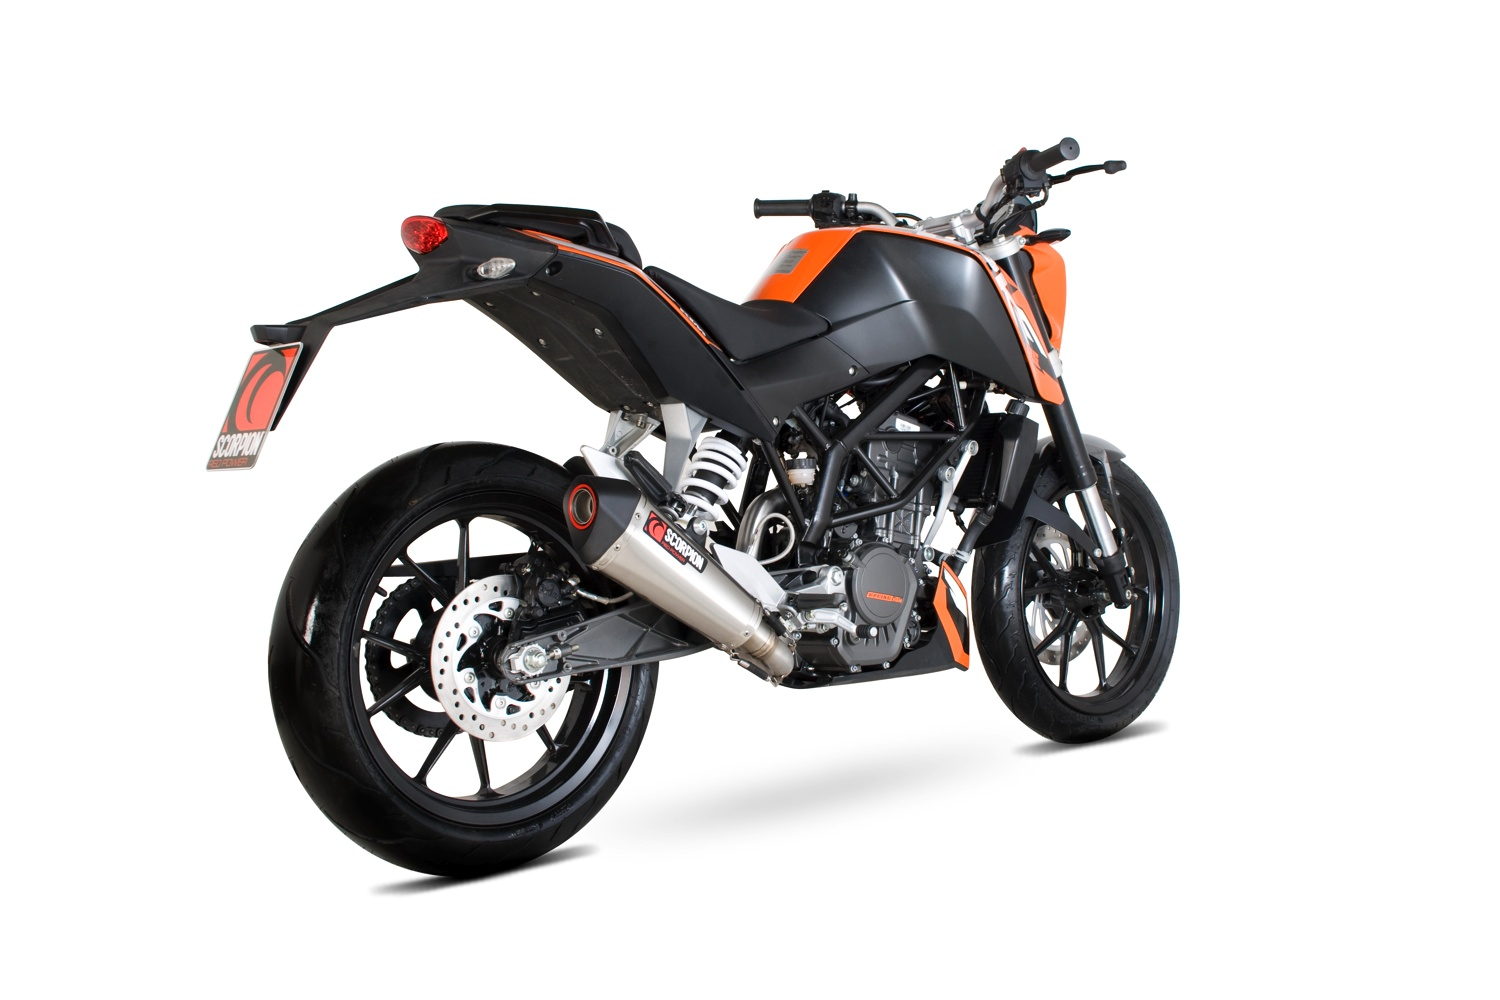 scorpion uno scarico per la ktm 125 duke. Black Bedroom Furniture Sets. Home Design Ideas